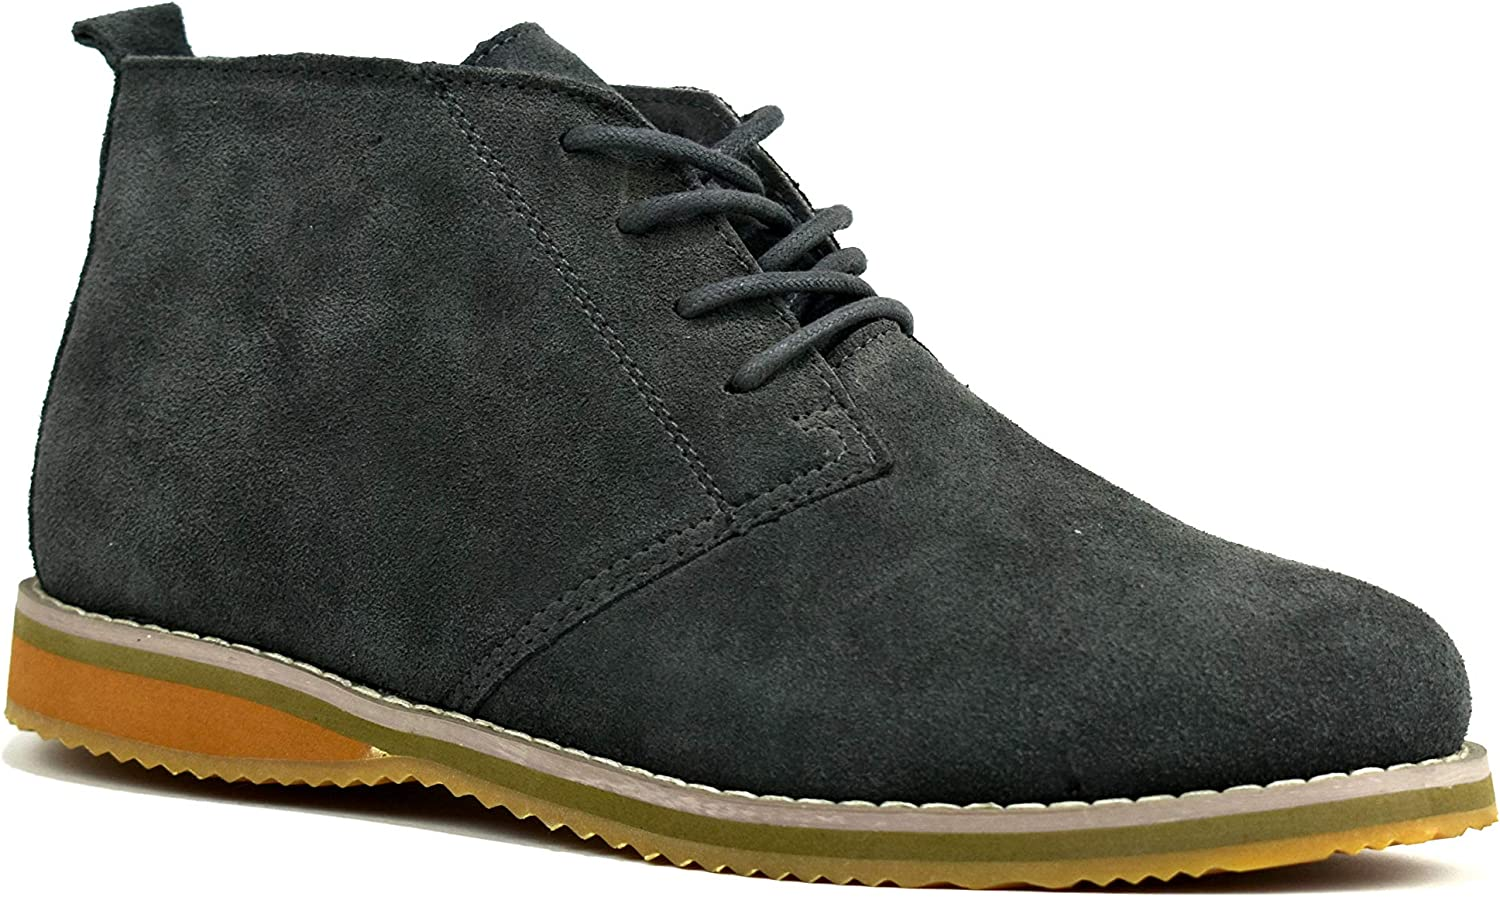 Mens Fashion Lace Up Suede Leather Desert Boots UK Size 6-11